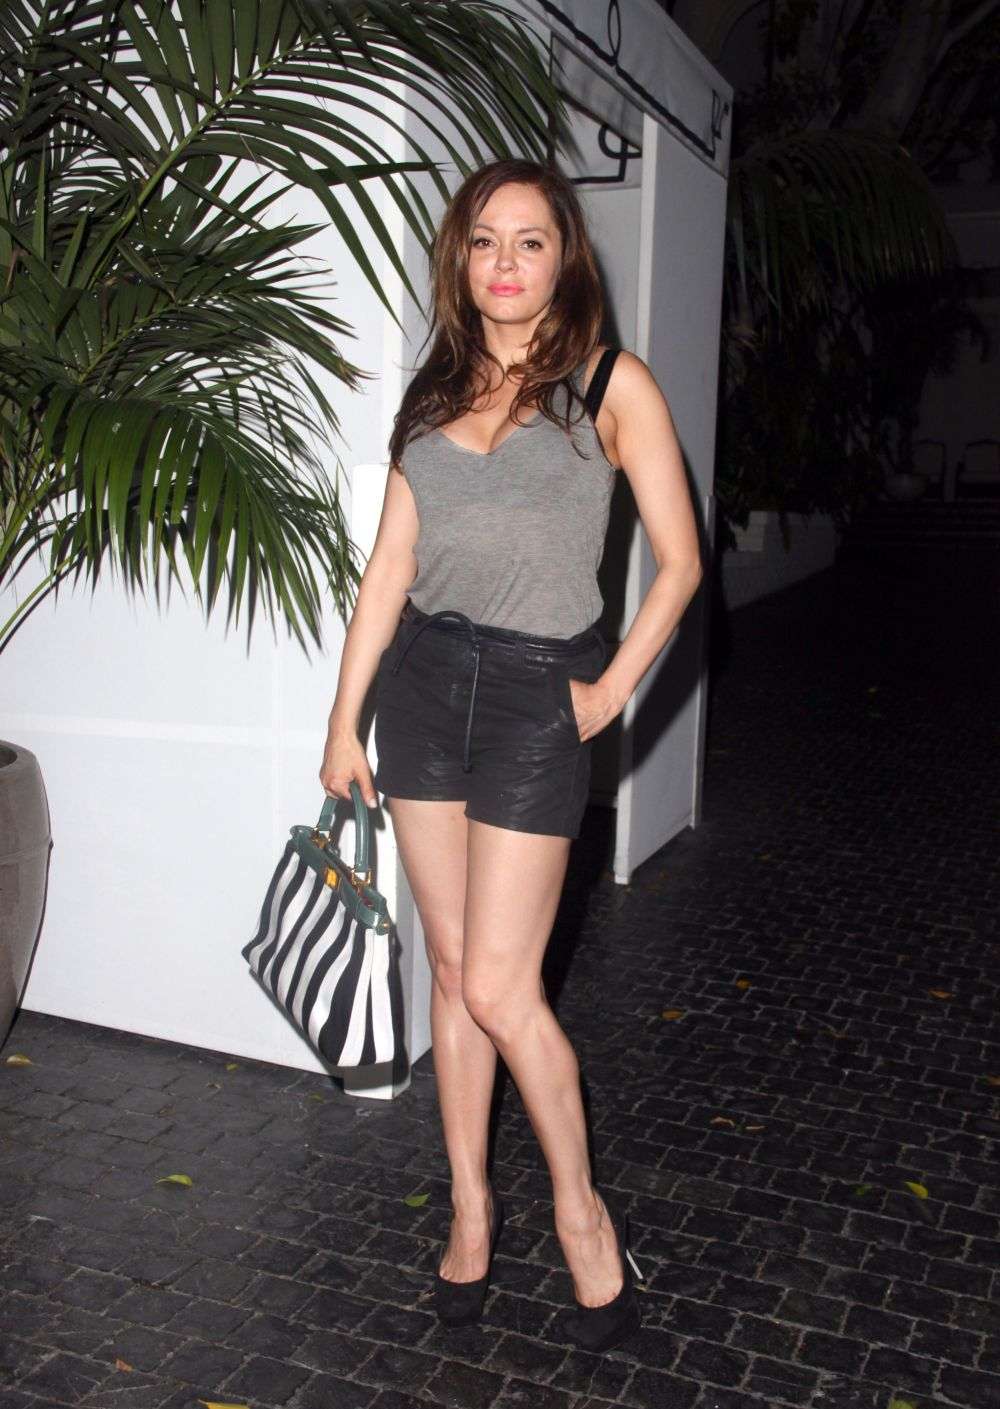 Cleavage Rose McGowan nudes (12 foto and video), Topless, Paparazzi, Feet, braless 2017